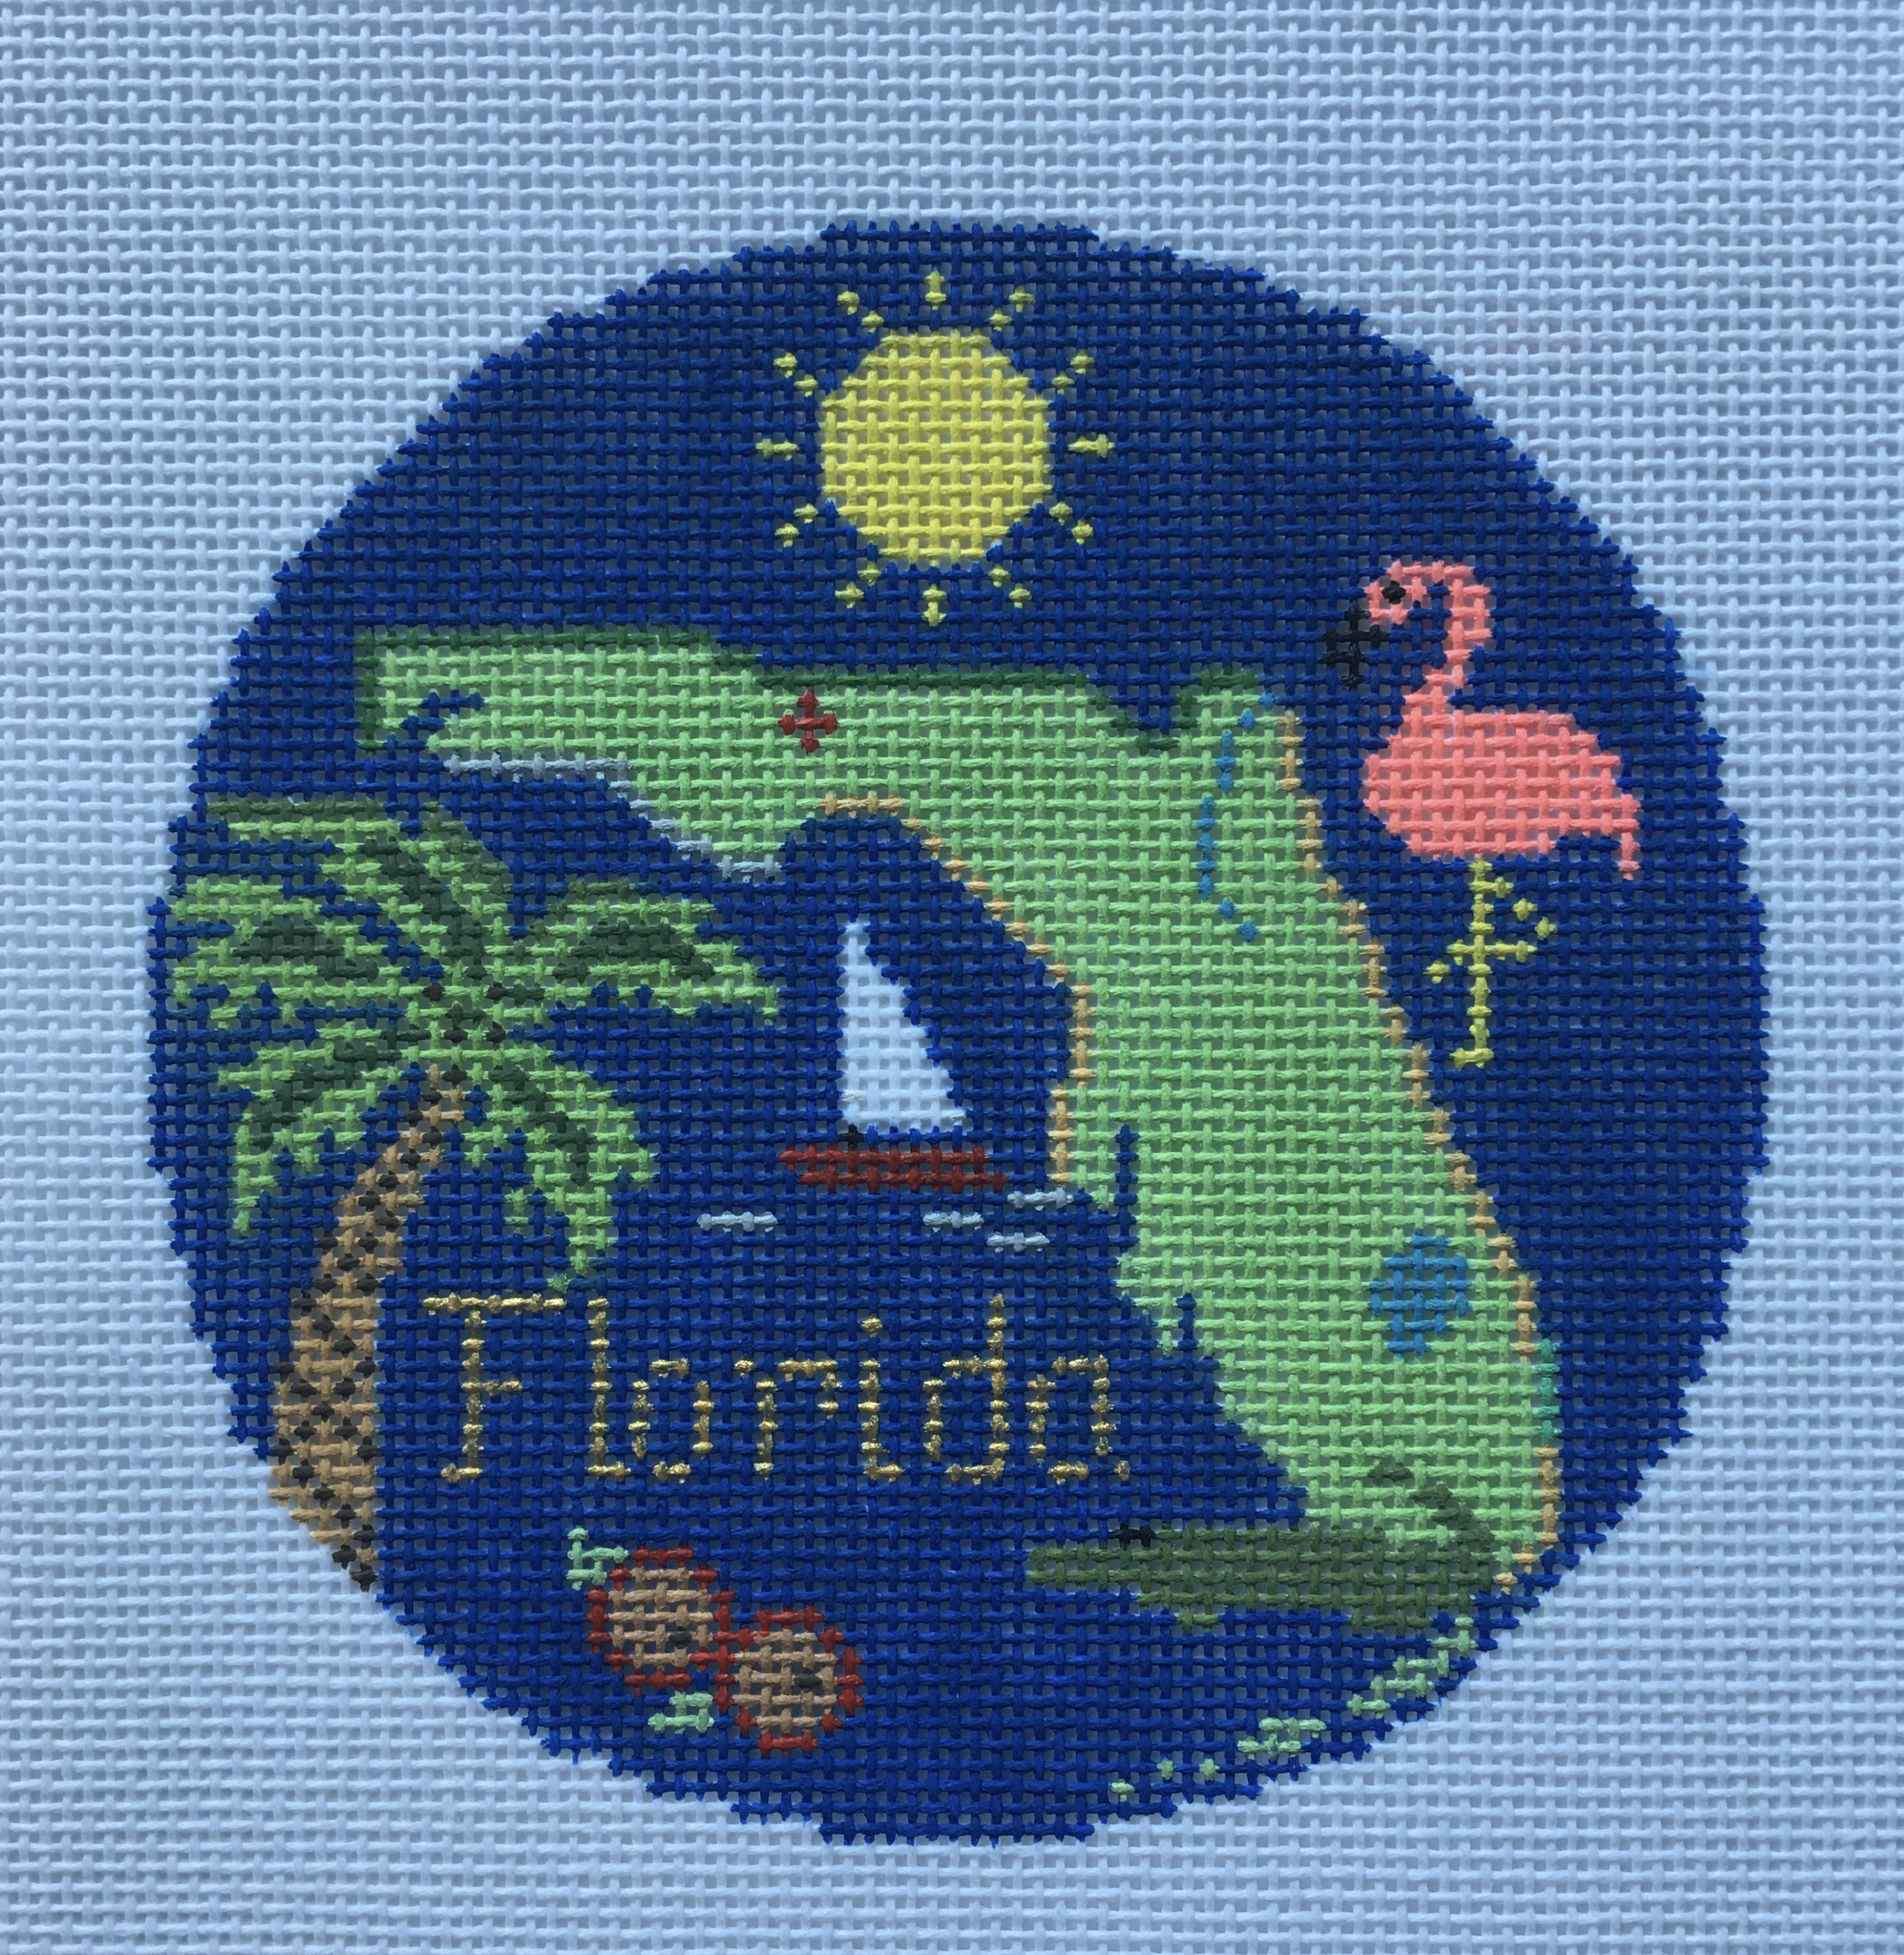 Travel Round - Florida by Silver Needle